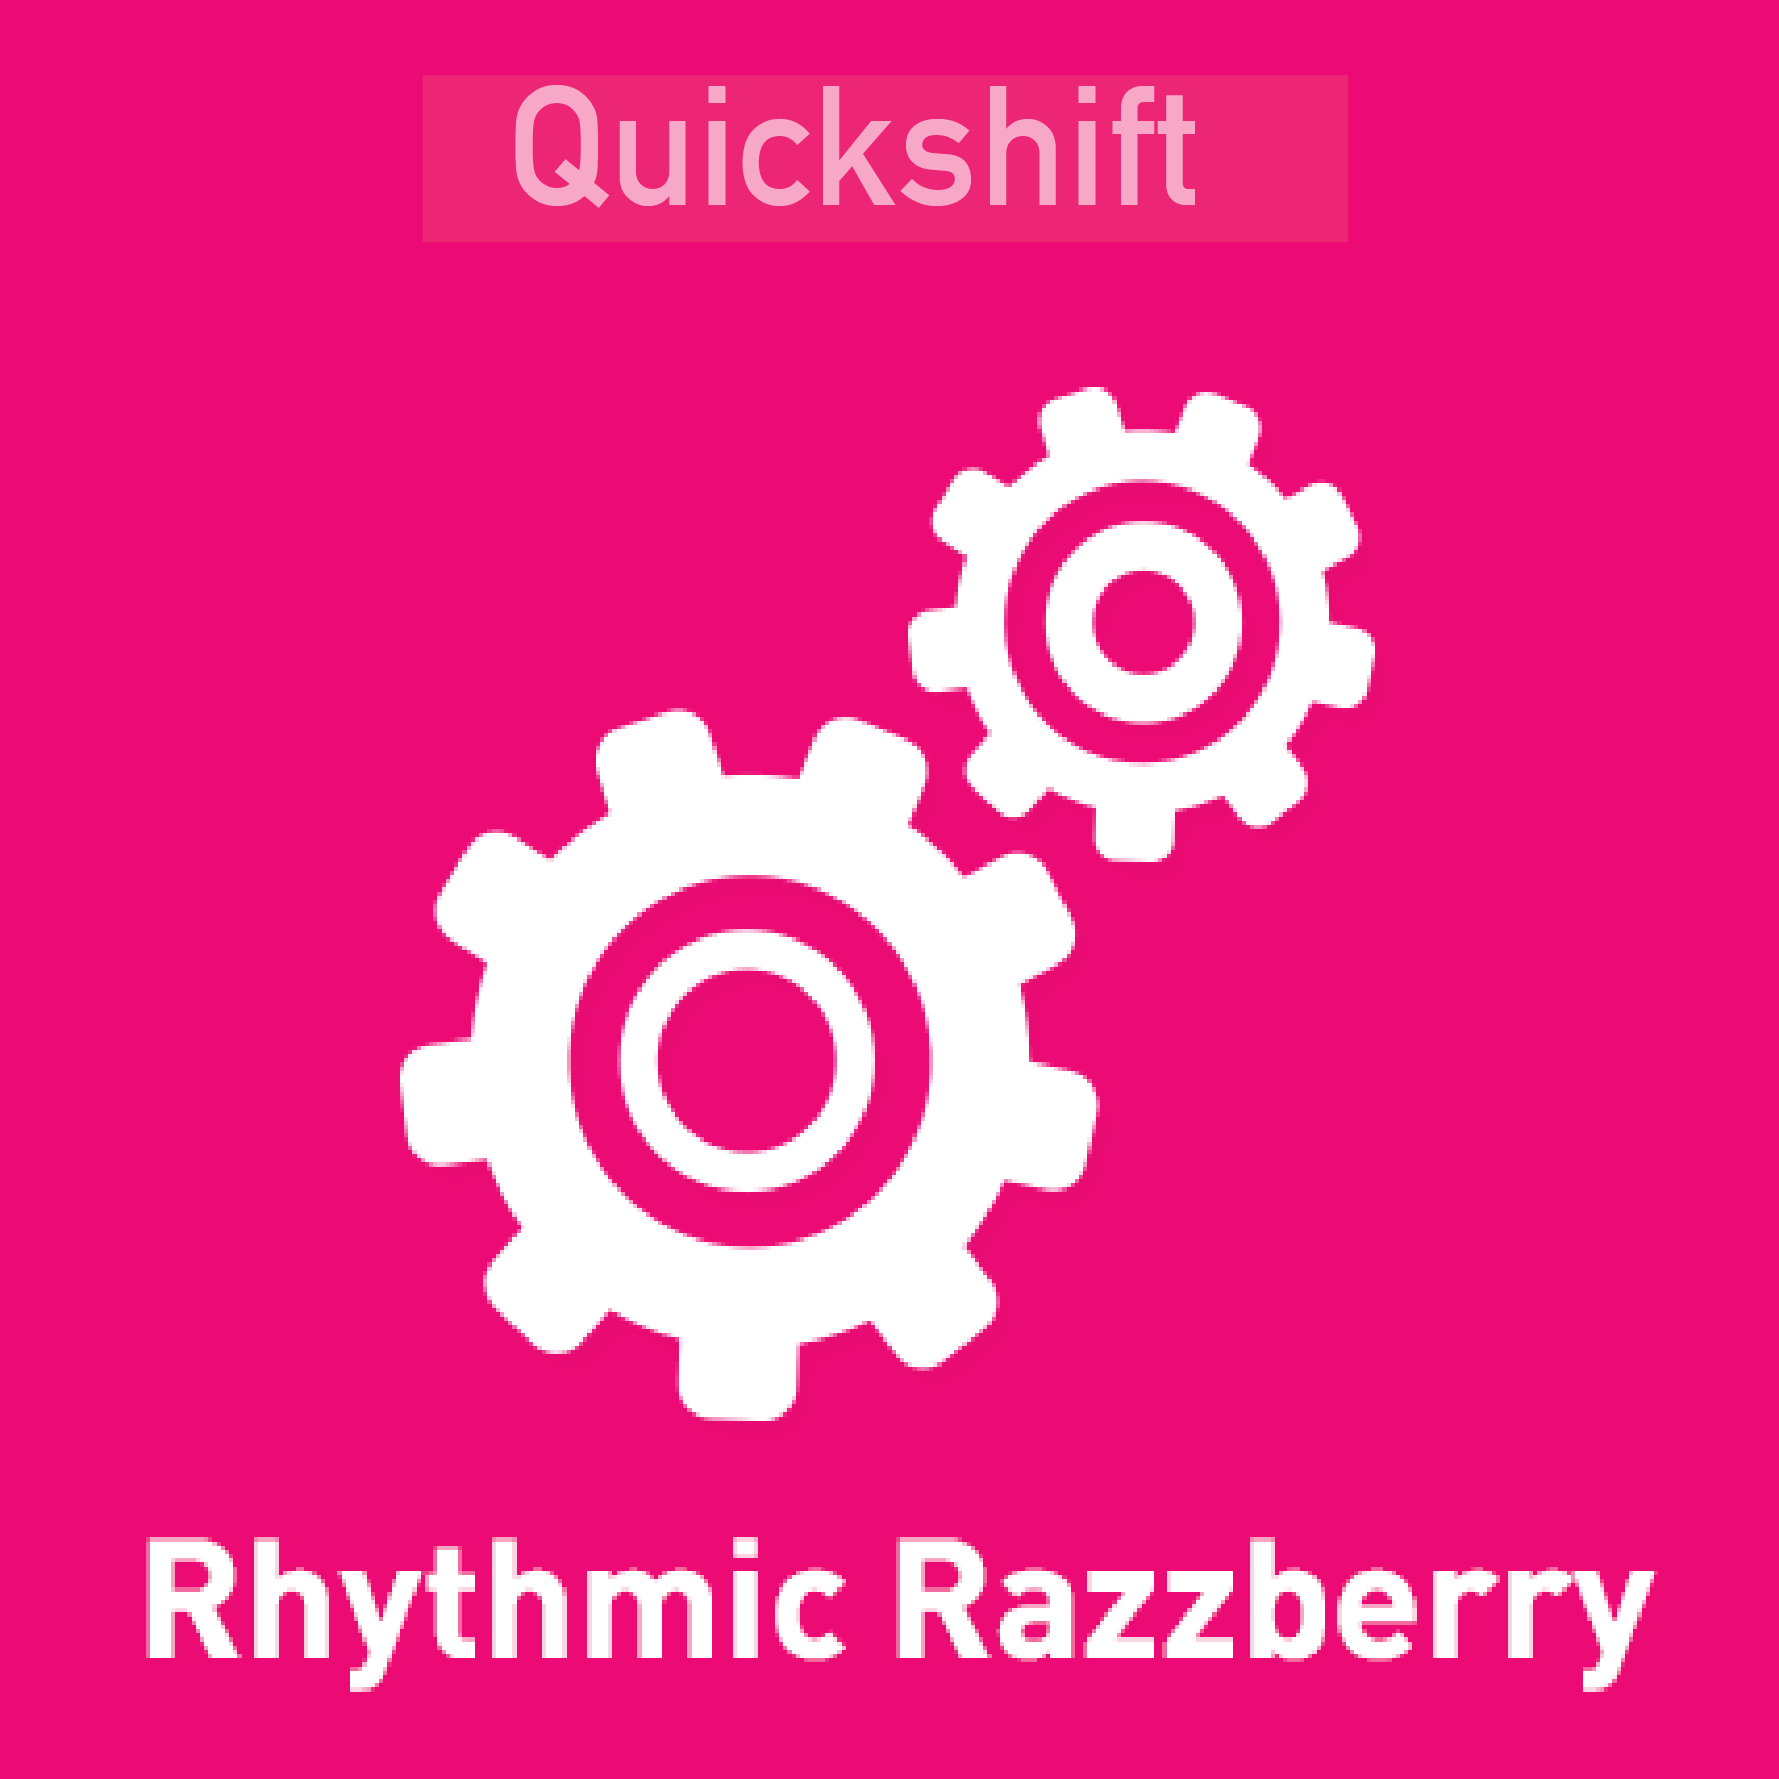 Quickshift - Rhythmic Razzberry